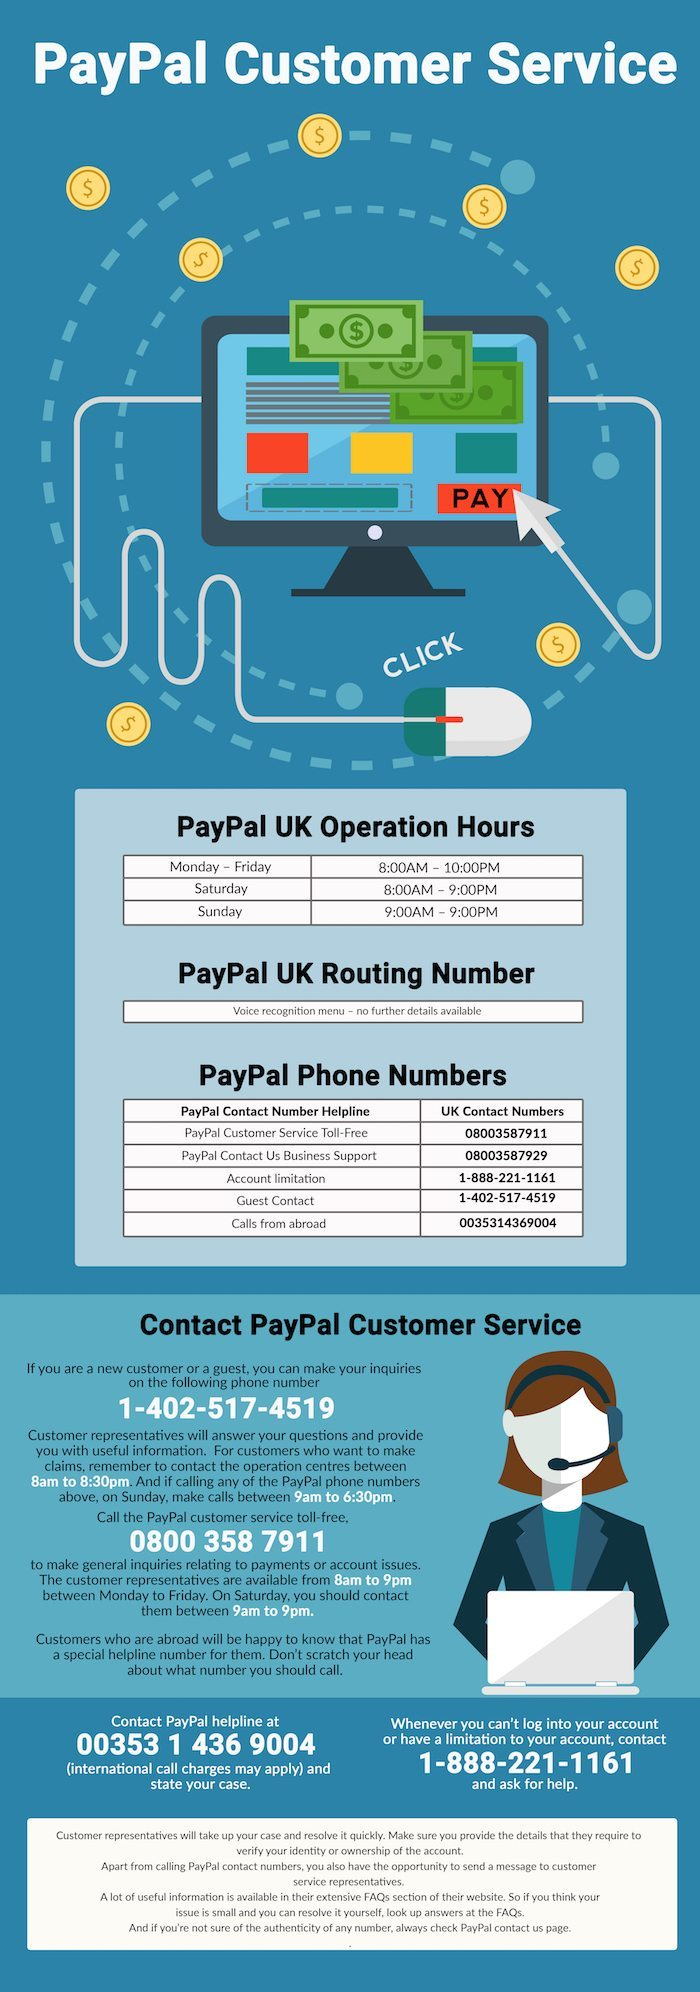 PayPal Customer Service Numbers